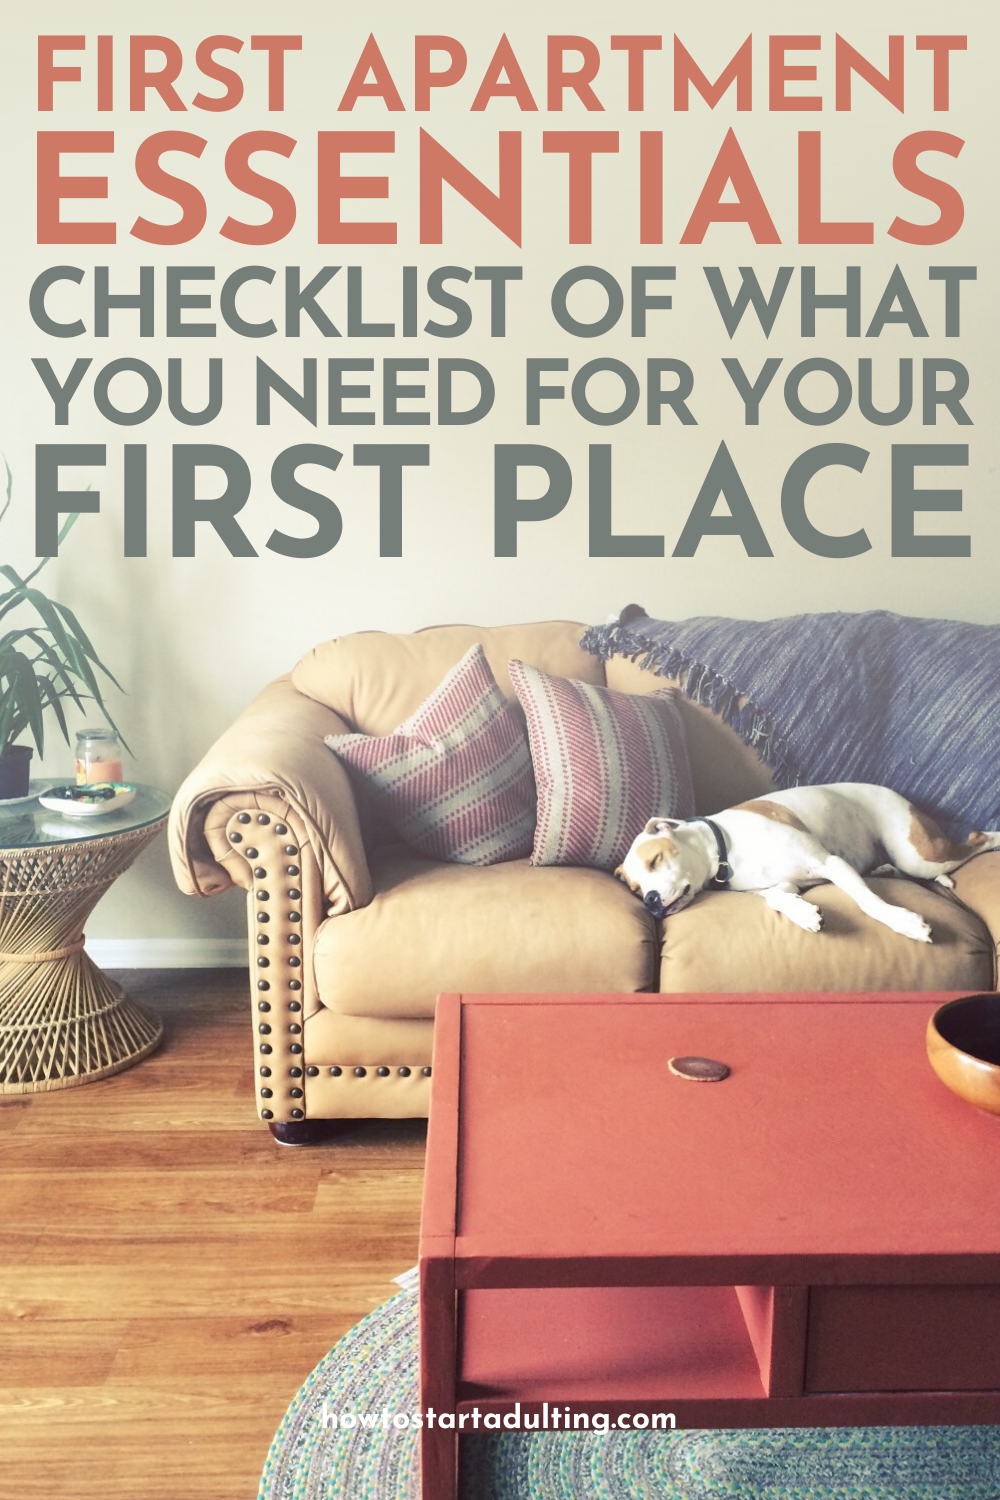 First Apartment Essentials Checklist_ What You Need To Buy For Your First Place #adulting #firstplace #firstapartment #movingin #movingchecklist